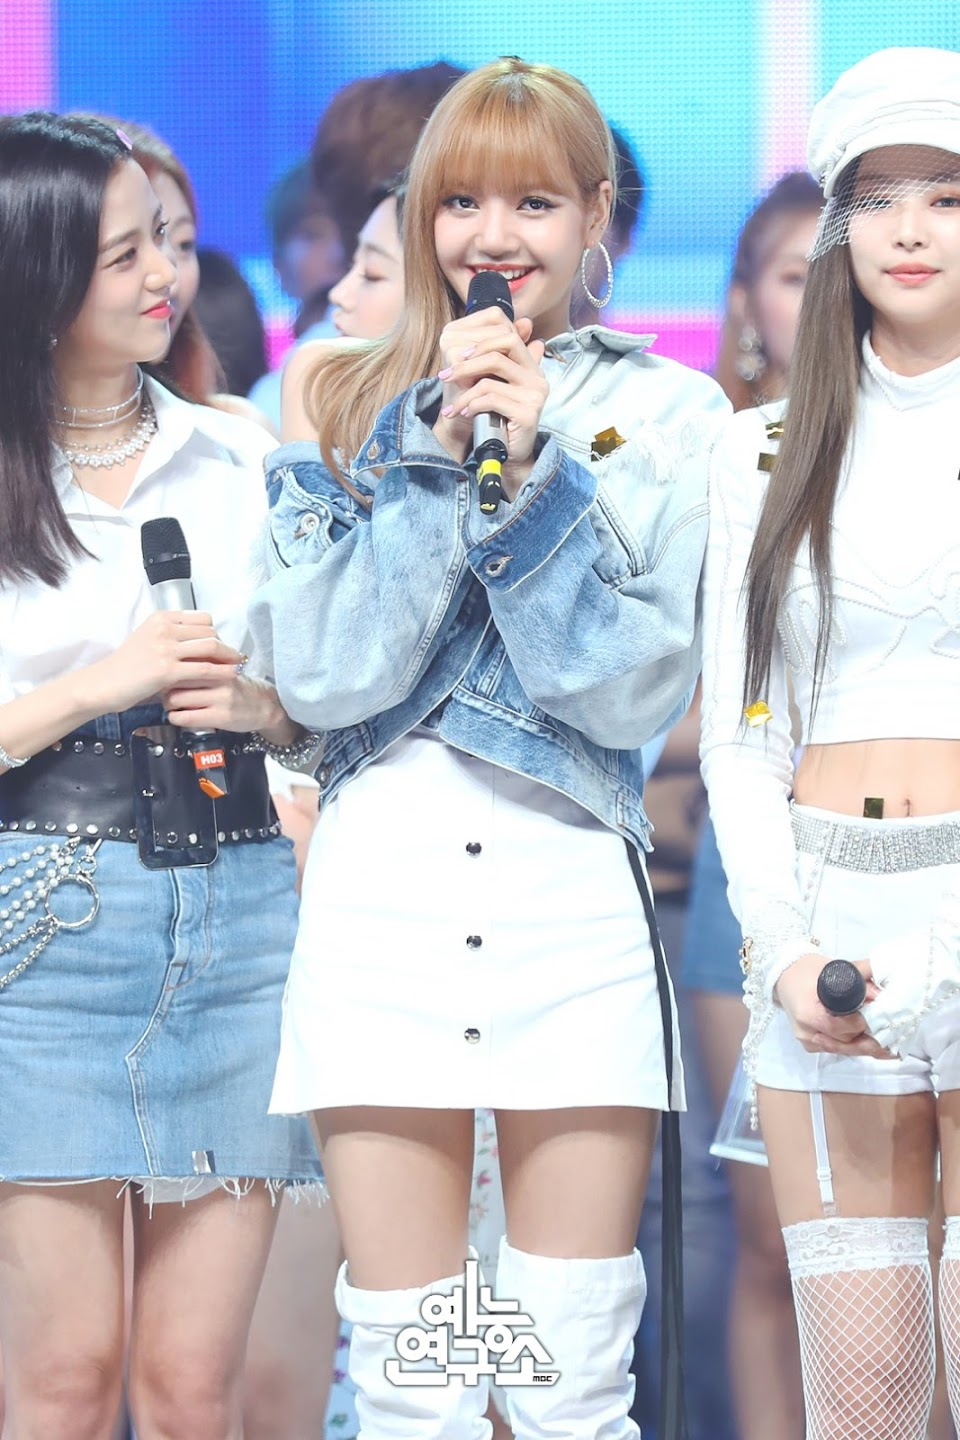 BLACKPINK-Jisoo-Jennie-Lisa-MBC-Music-Core-white-outfit-30-June-2018-photo-2